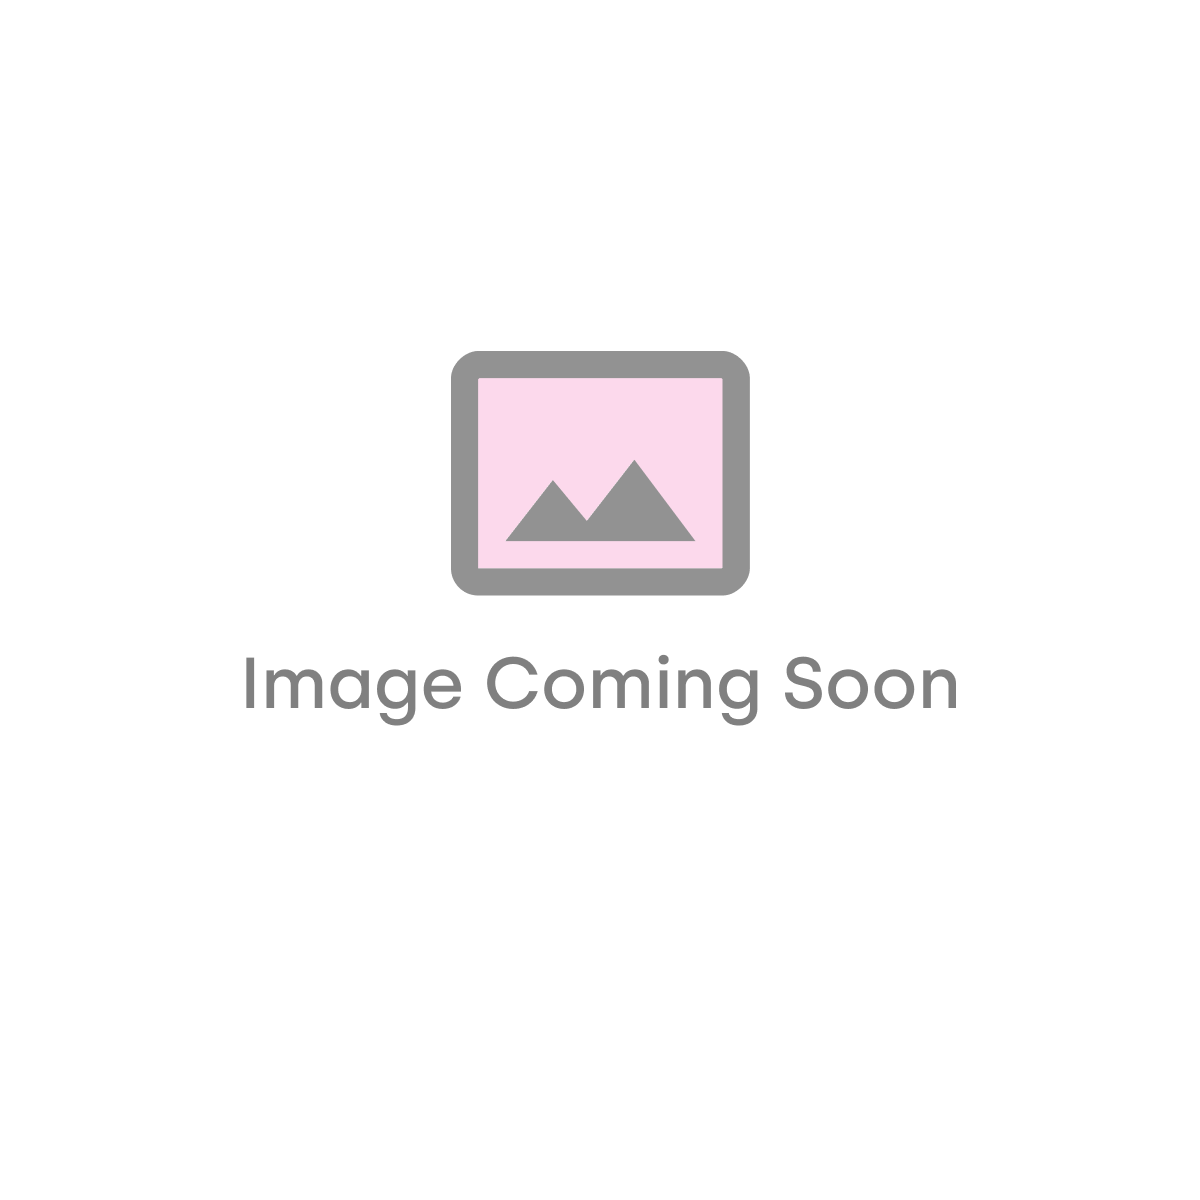 Roma Straight Heated Towel Rail  - 800mm x 500mm - Anthracite (19718)